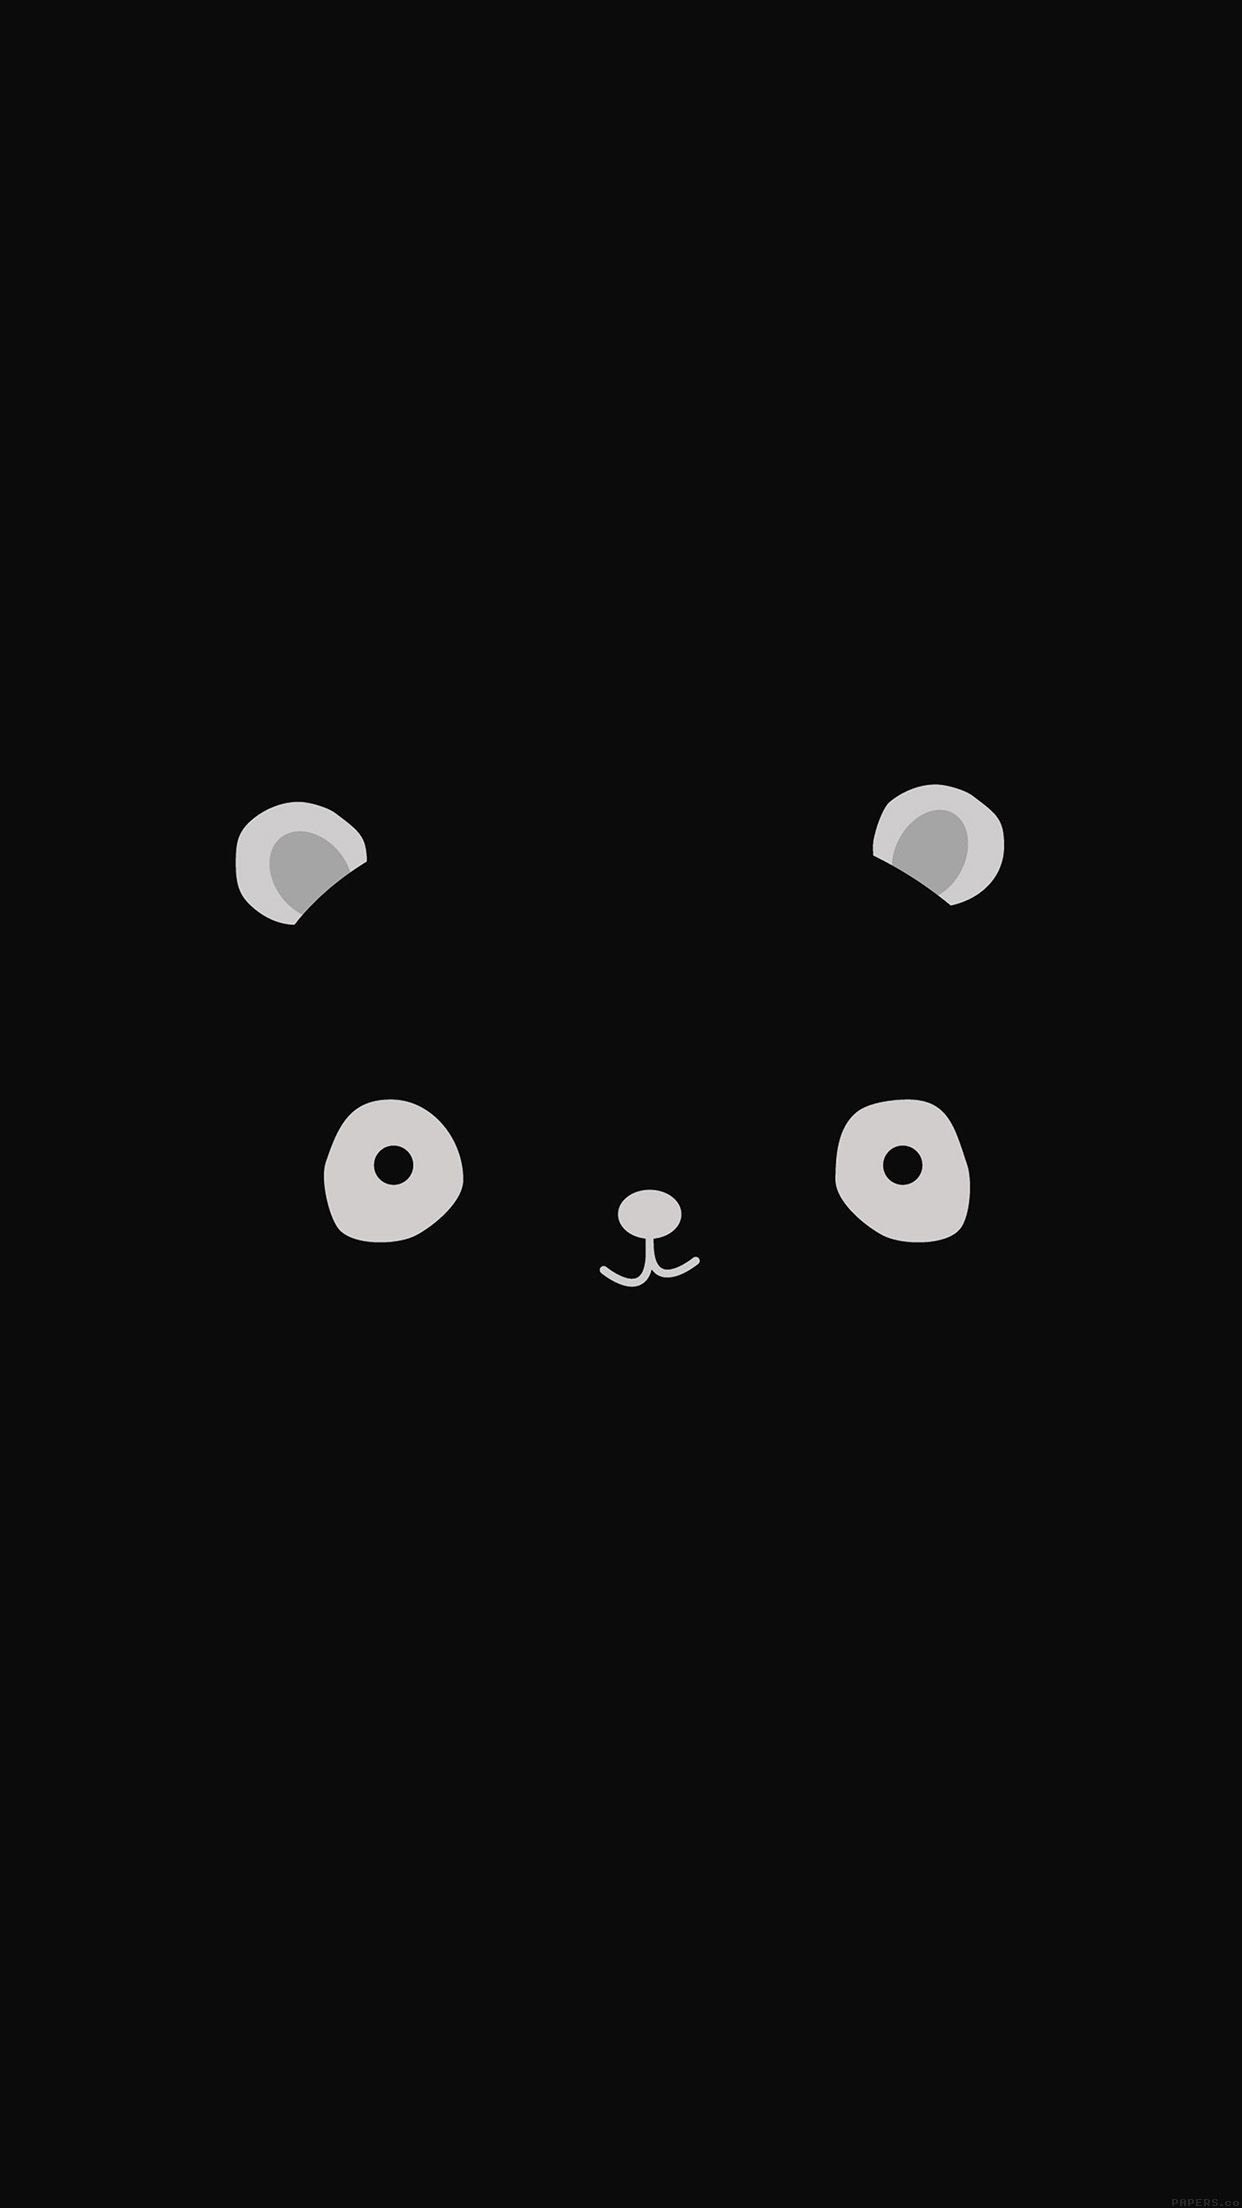 Cute Minimal Panda Dark Illust Art Iphone6 Plus Wallpaper Mobile Wallpapers Cute Black Wallpaper Wallpaper Iphone Cute Iphone Wallpaper Girly